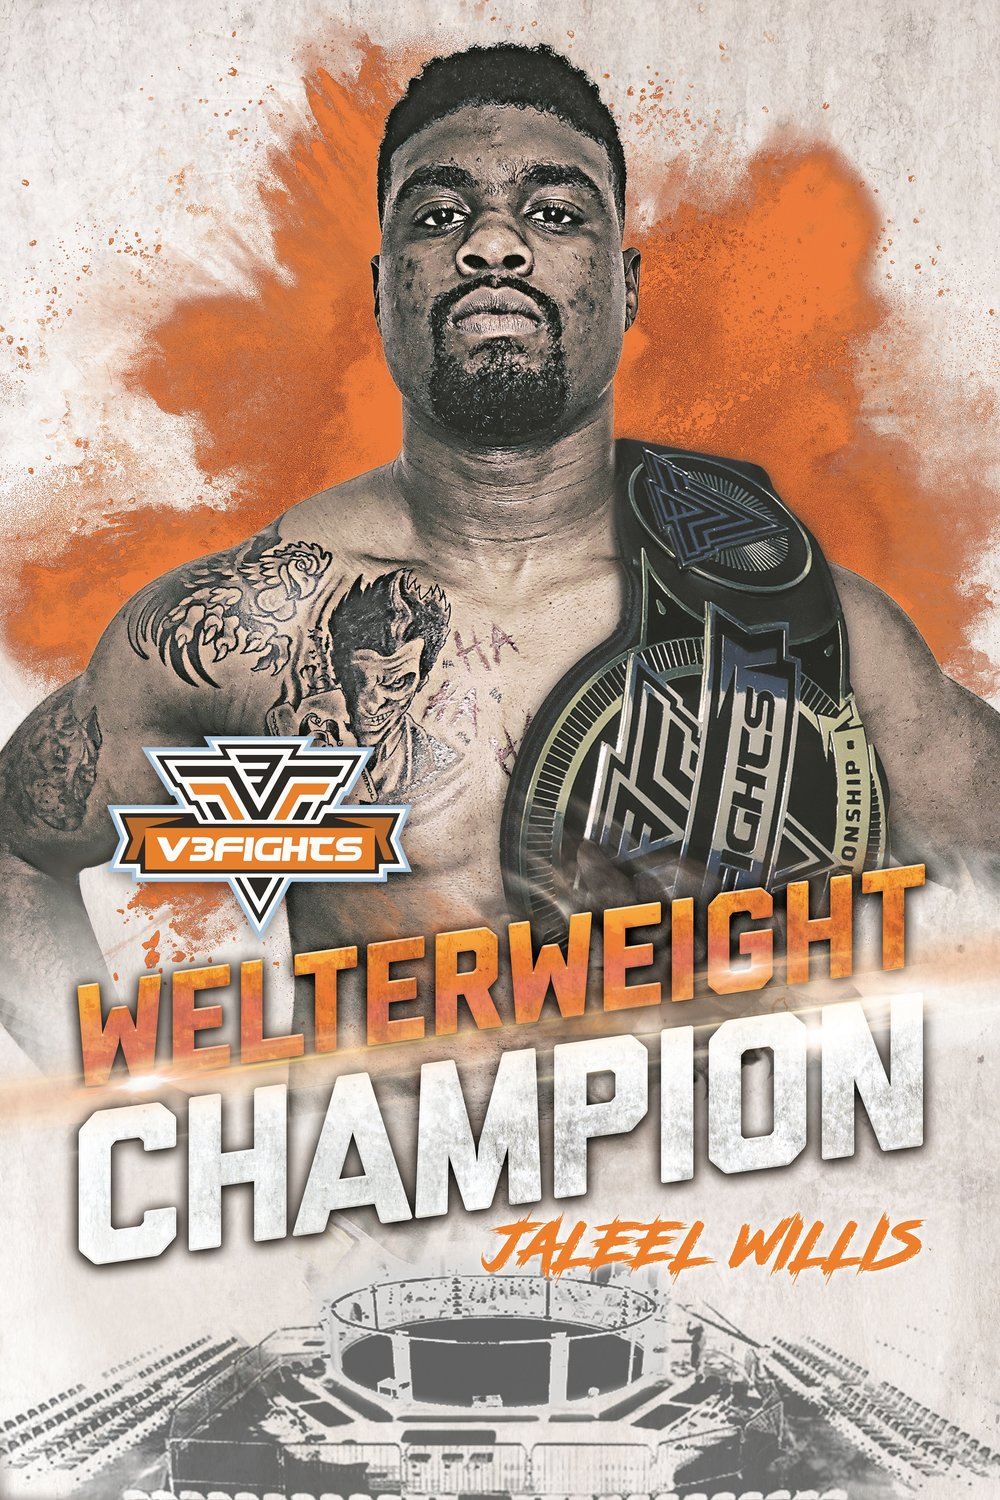 V3 - Champion Poster - Jaleel Willis.jpg